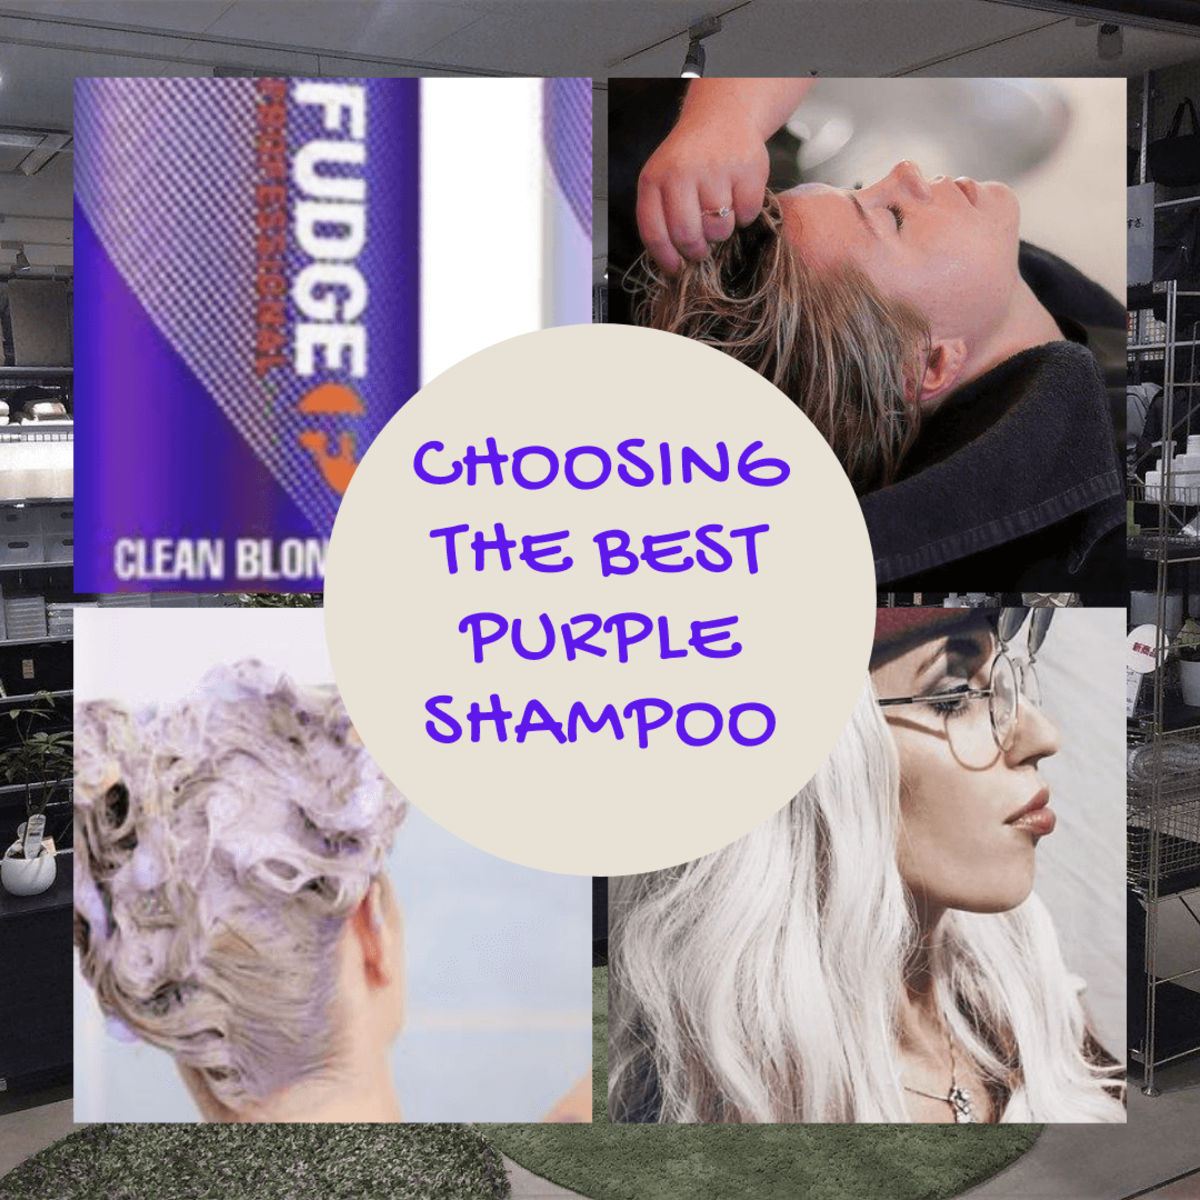 Choosing a Purple Shampoo